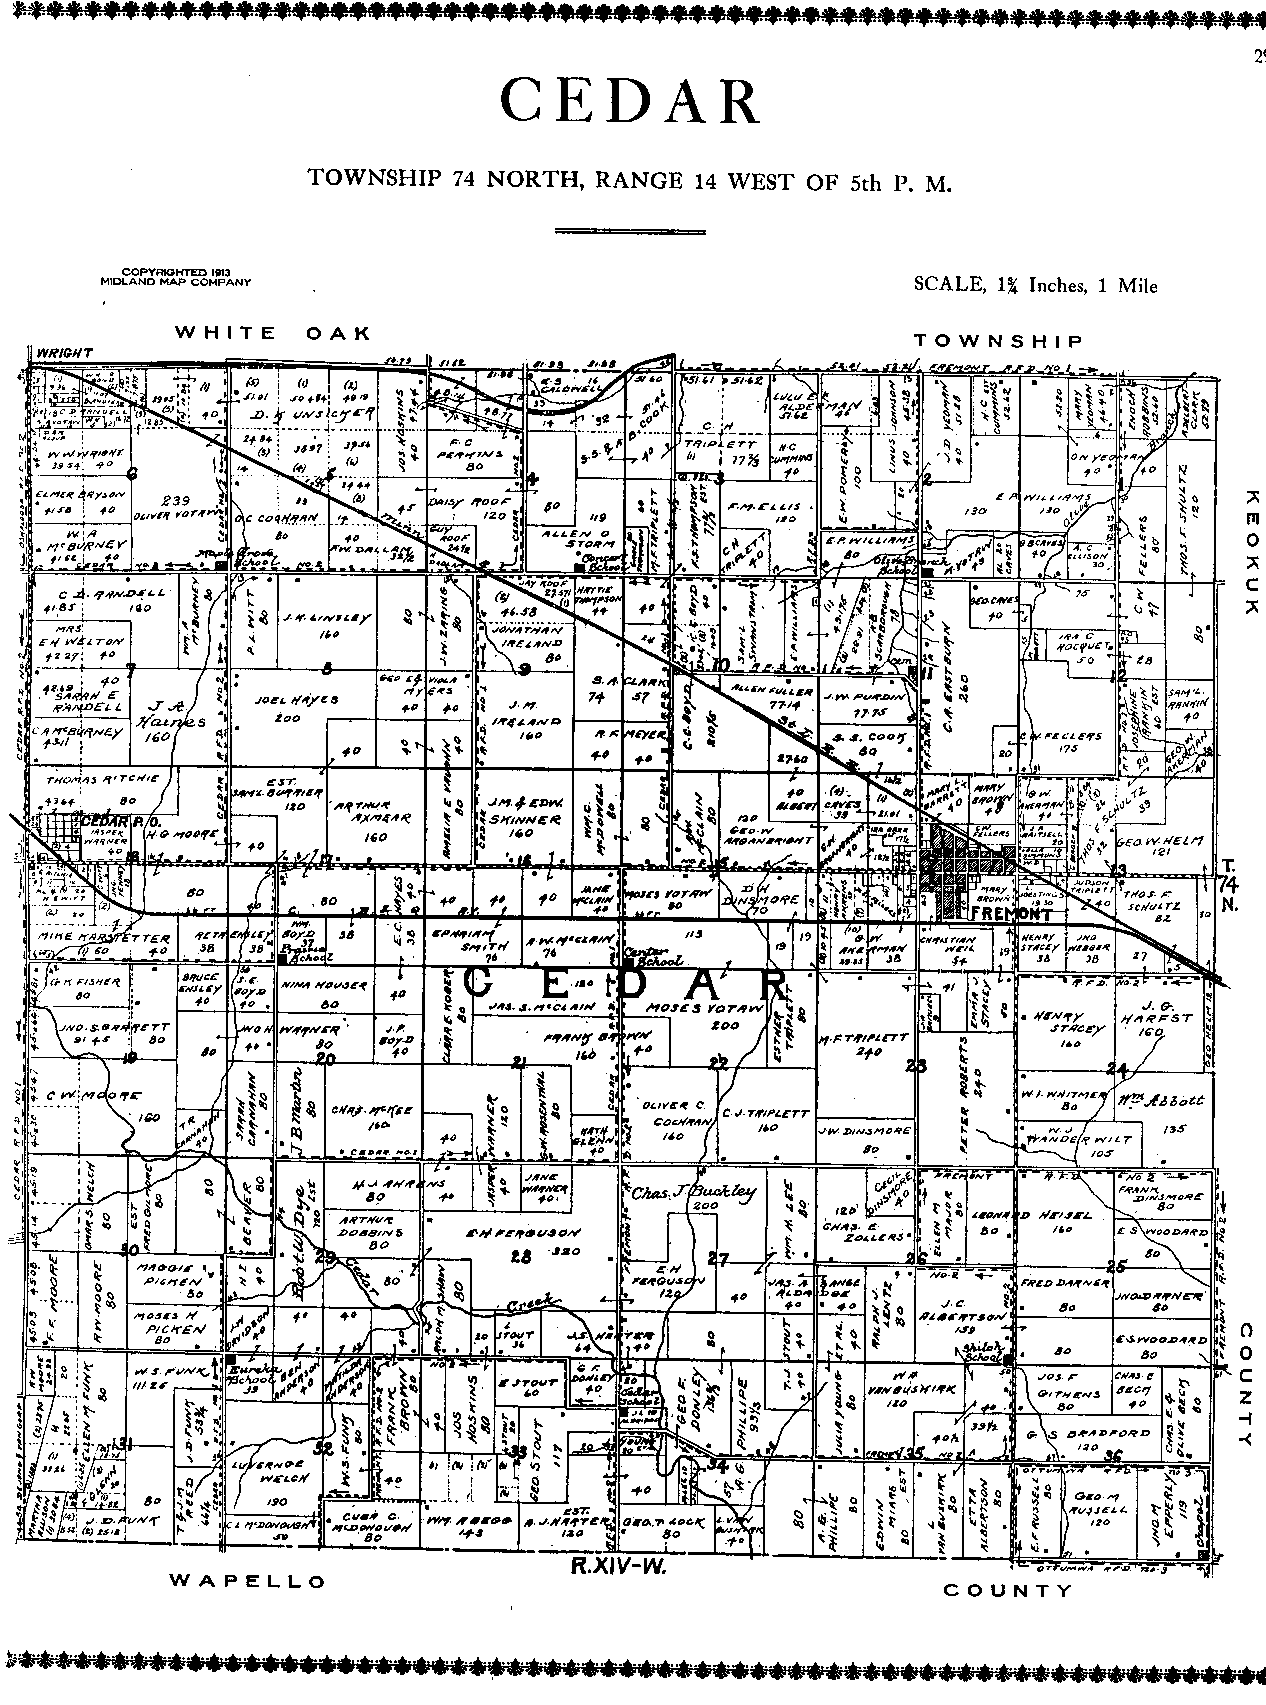 1913 Plat Maps Mahaska County of Iowa